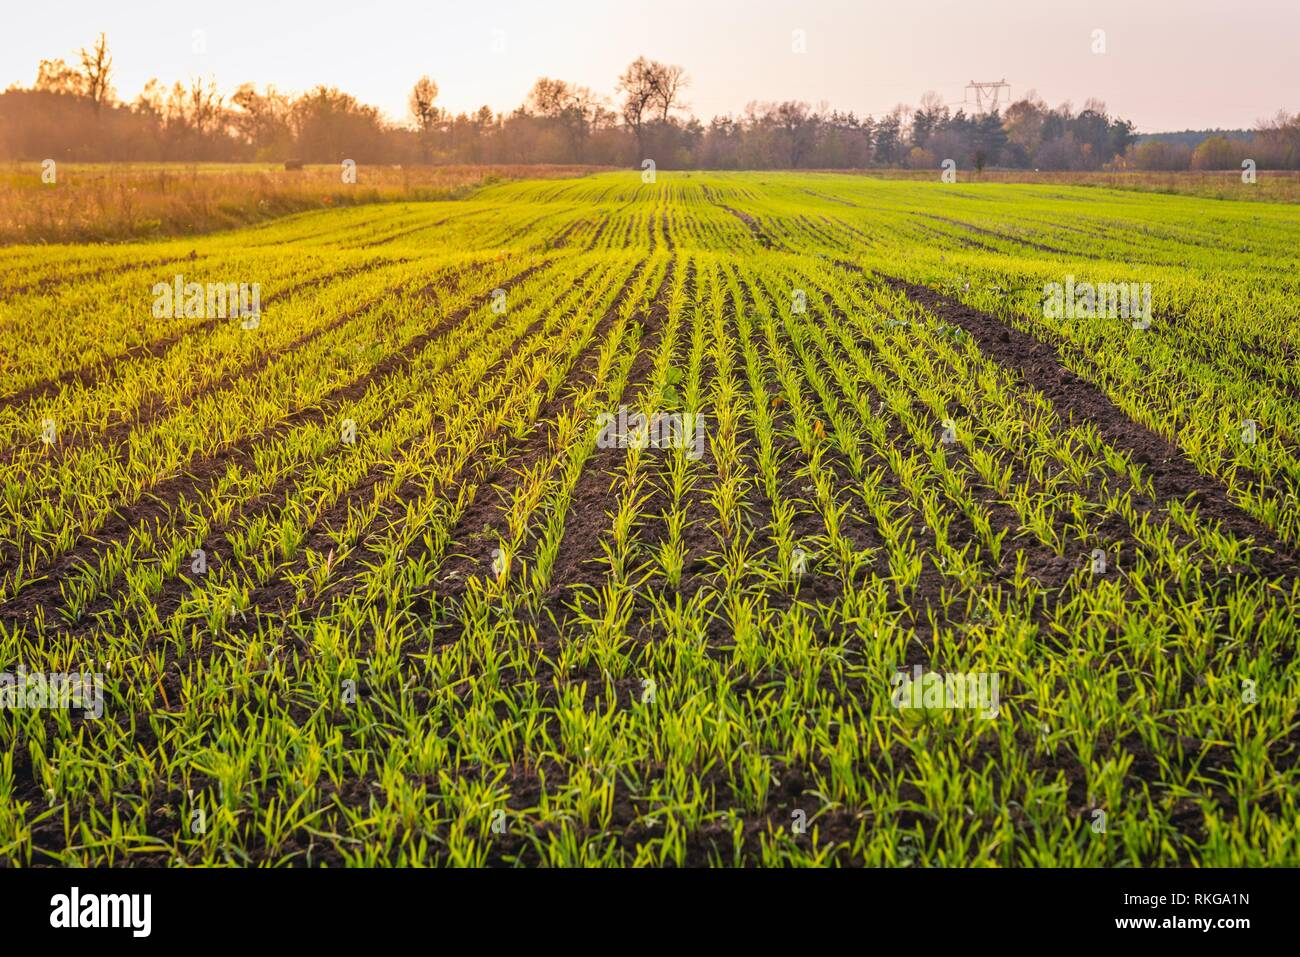 Winter cereal field in Brochow village, Sochaczew County in Masovian Voivodeship of Poland. - Stock Image